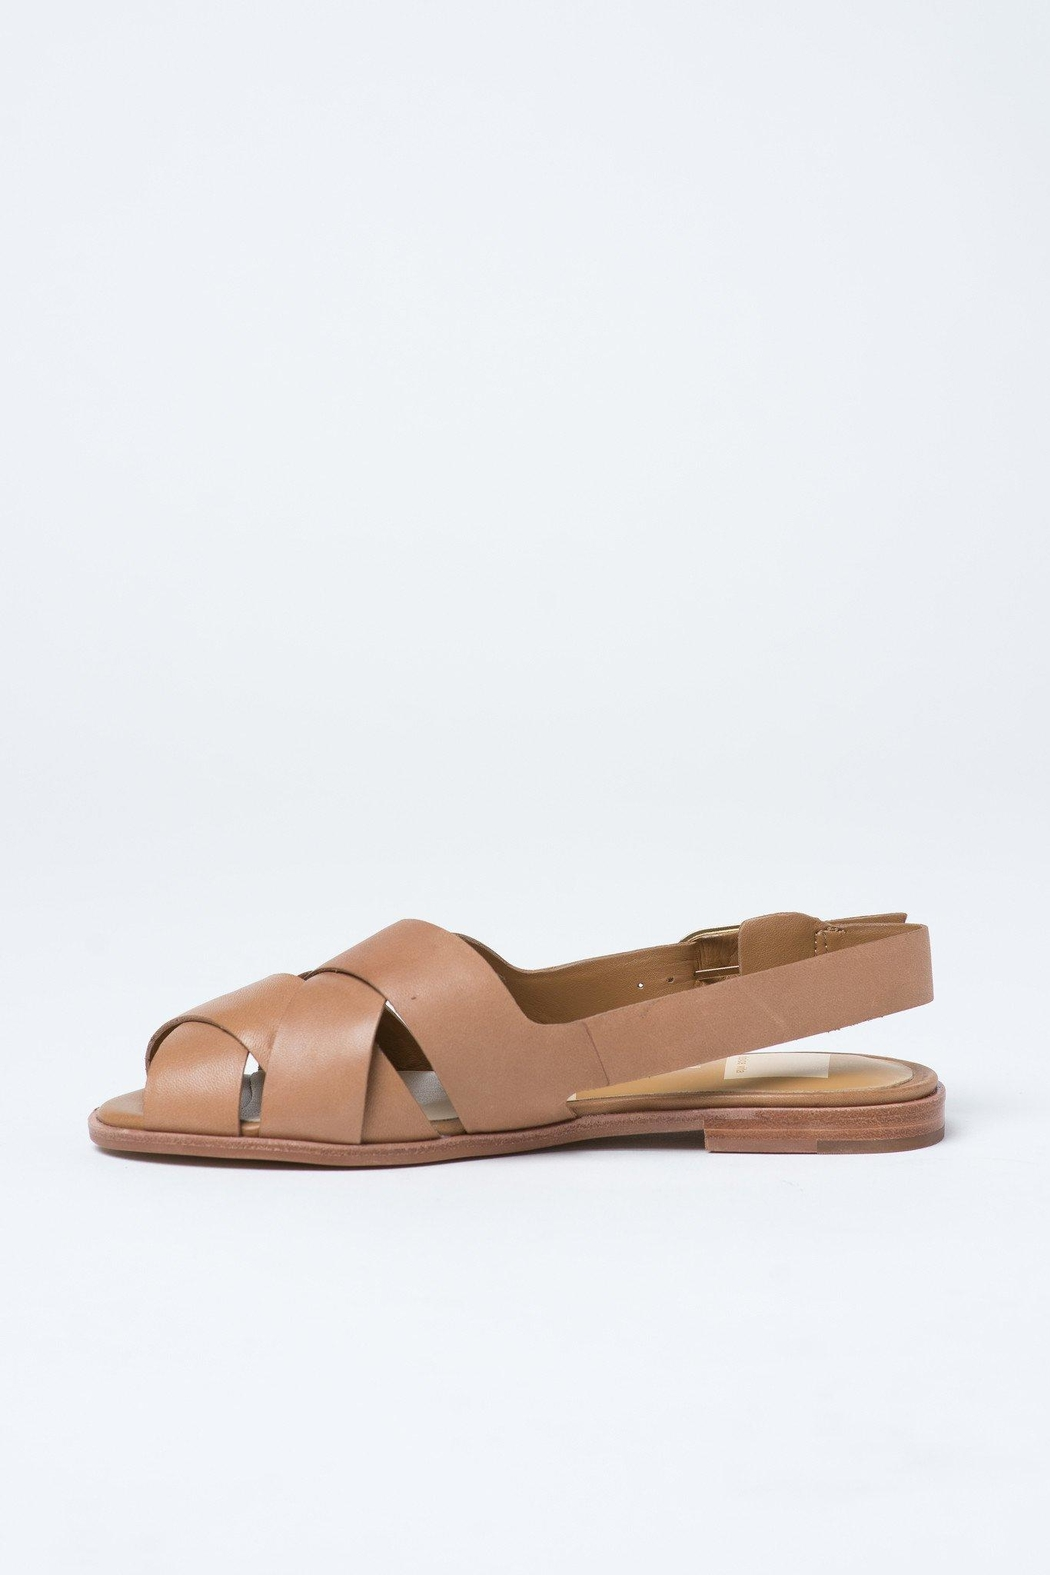 Dolce Vita Tan Bay Sandals - Main Image